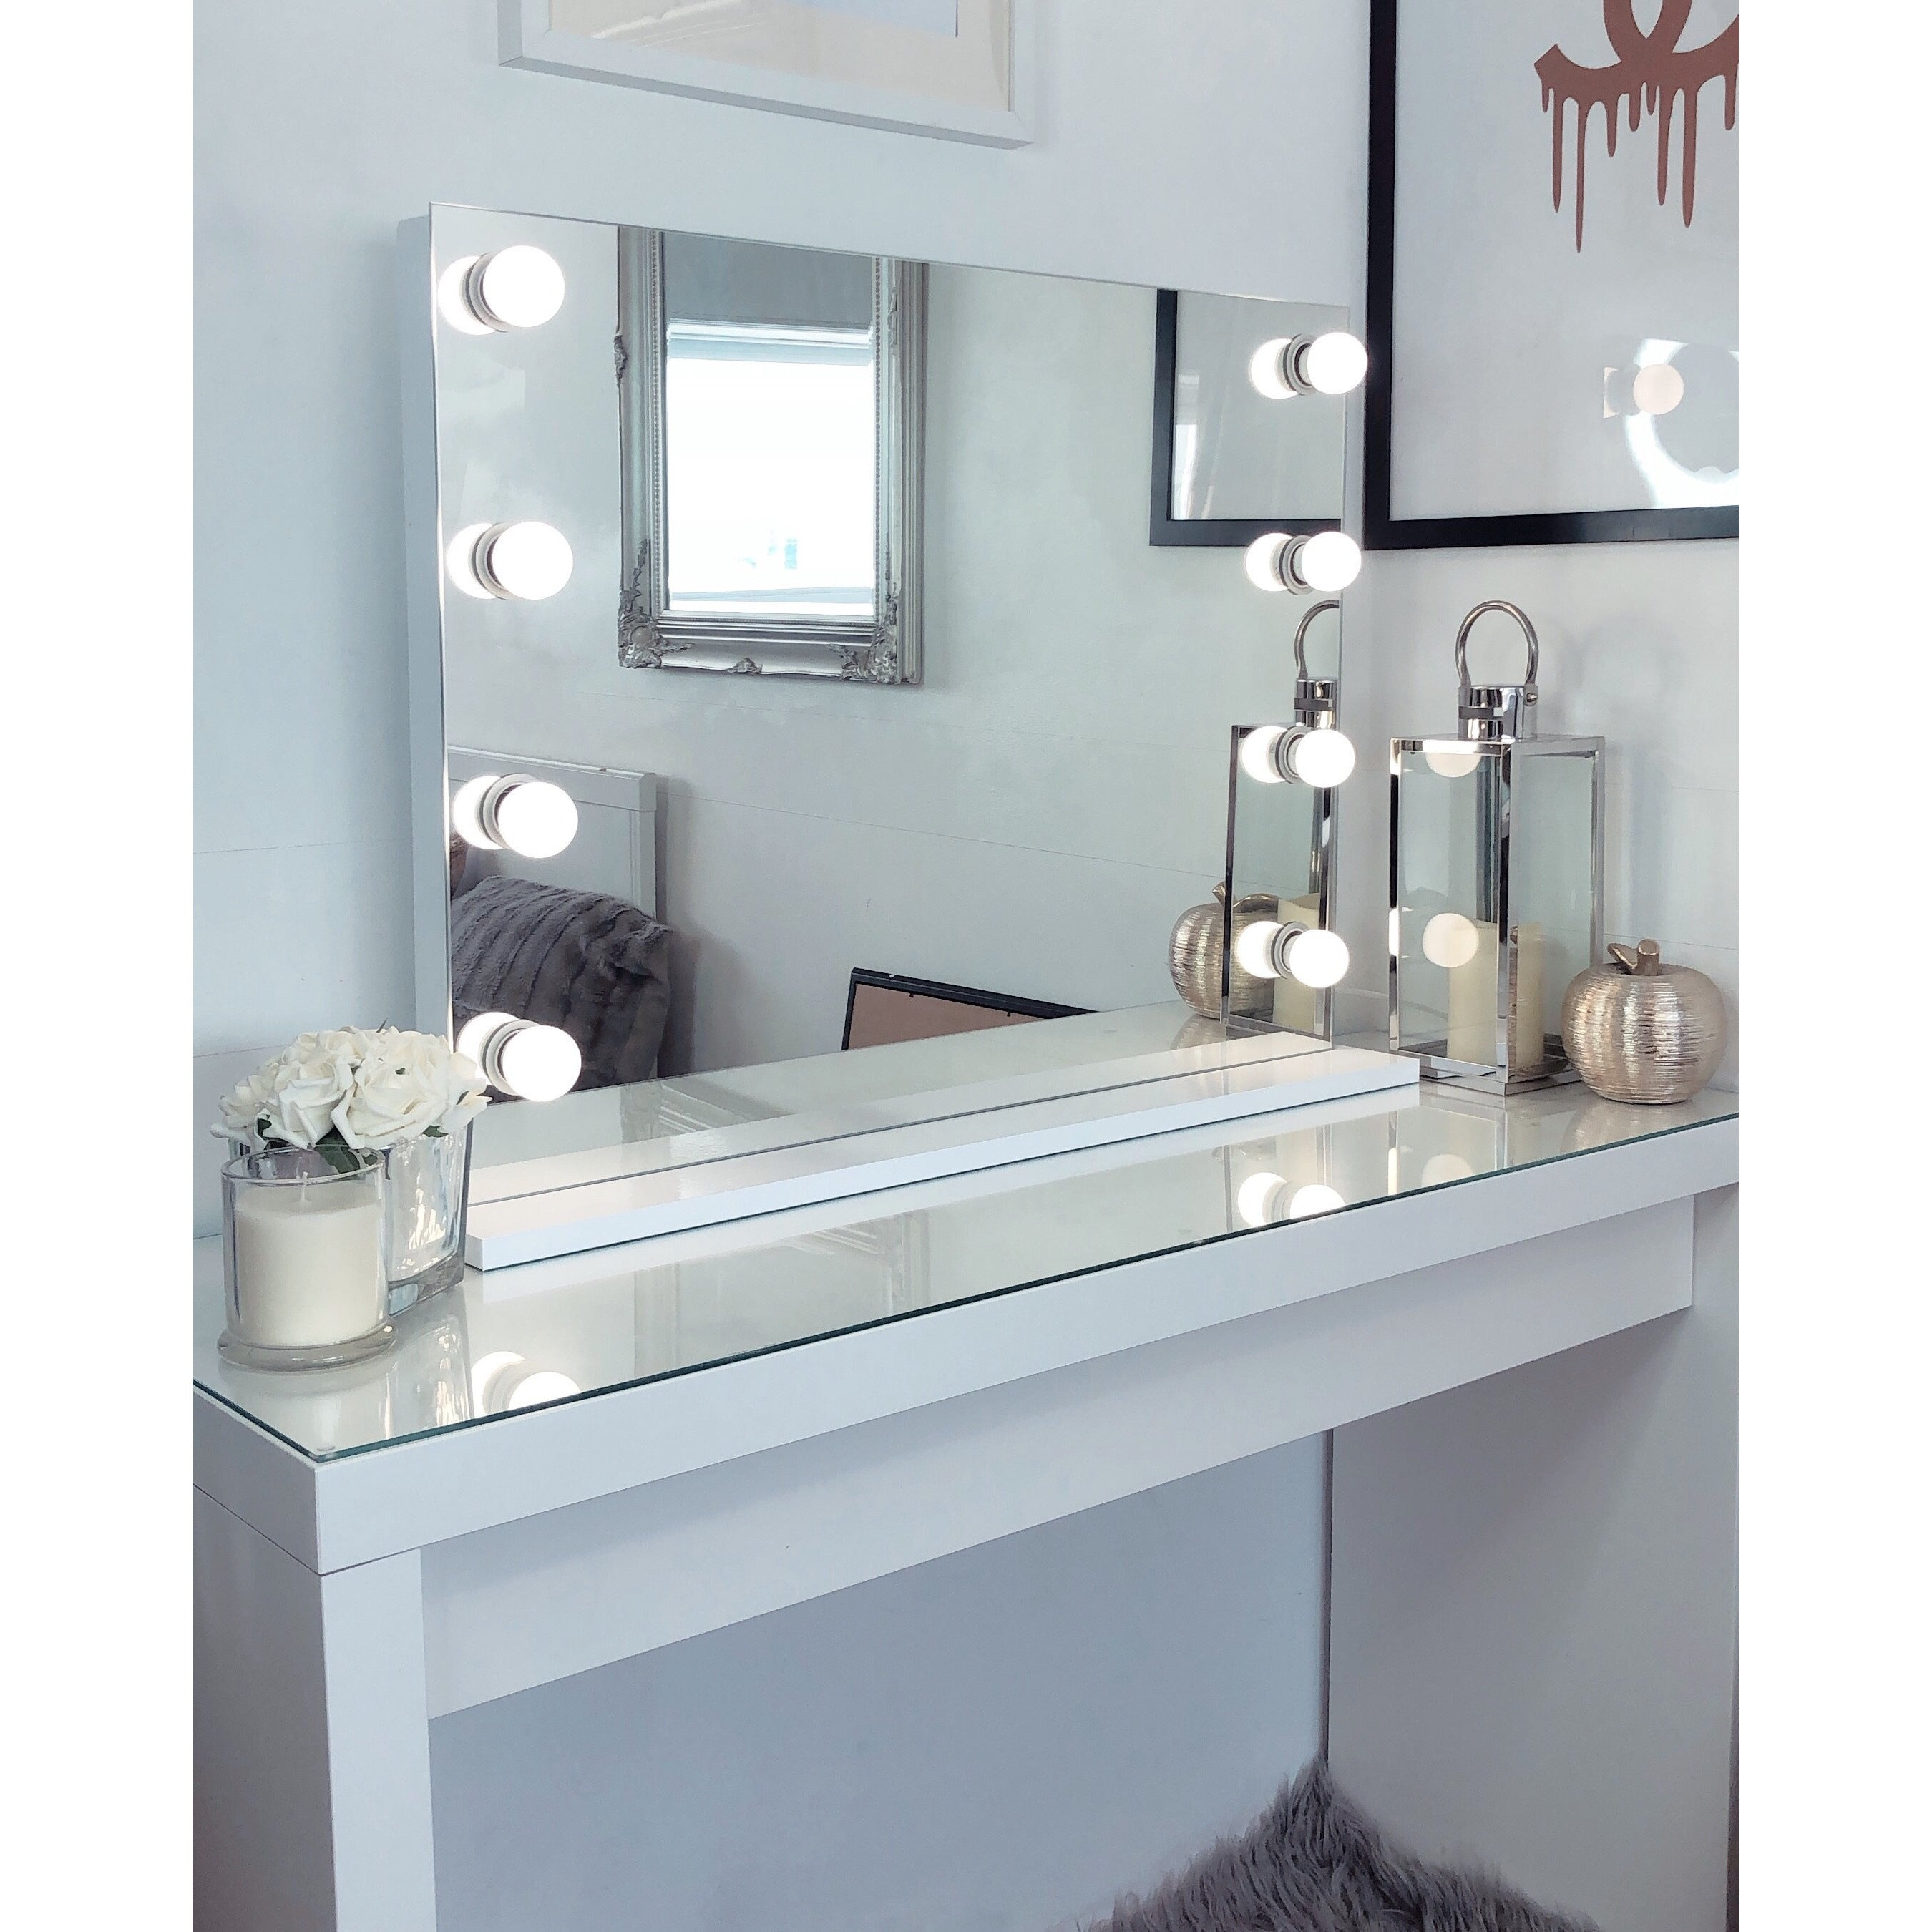 The Mayfair Vanity Mirror